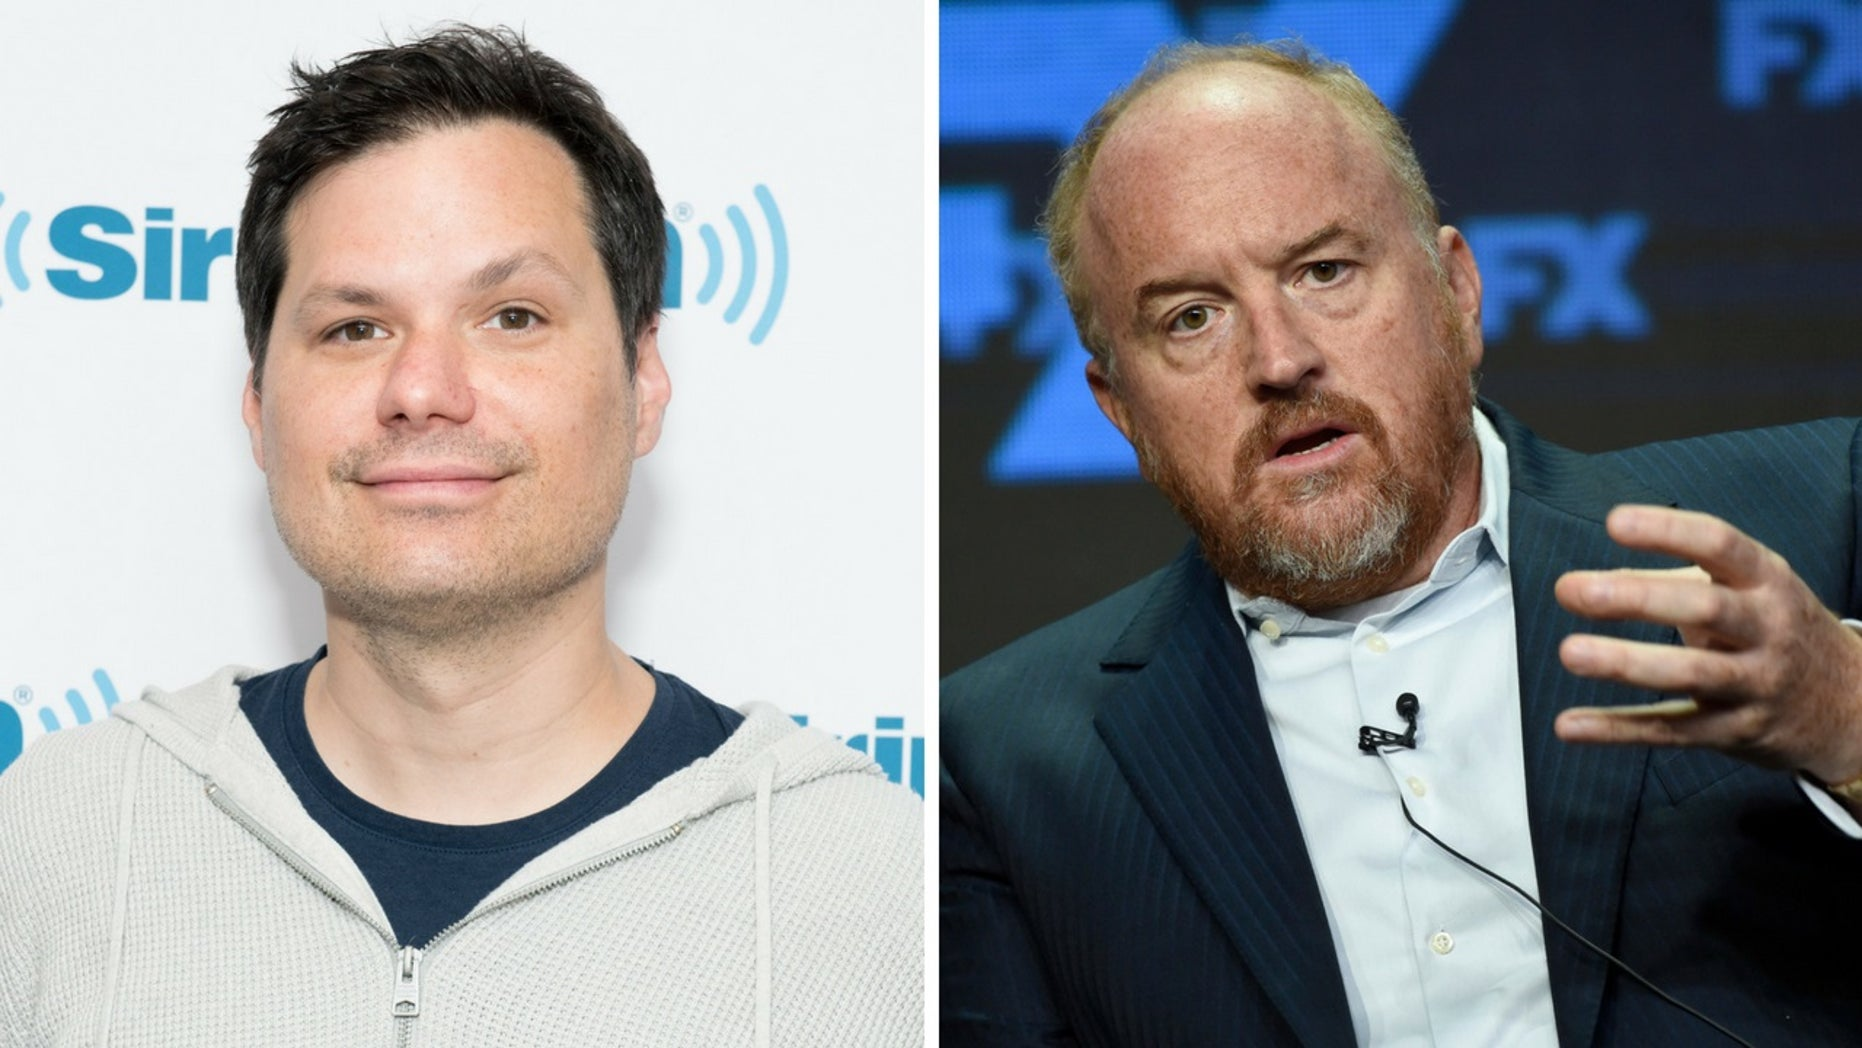 Michael Ian Black was slammed on social media after defending Louis C.K.'s return to stand-up following sexual misconduct allegations.